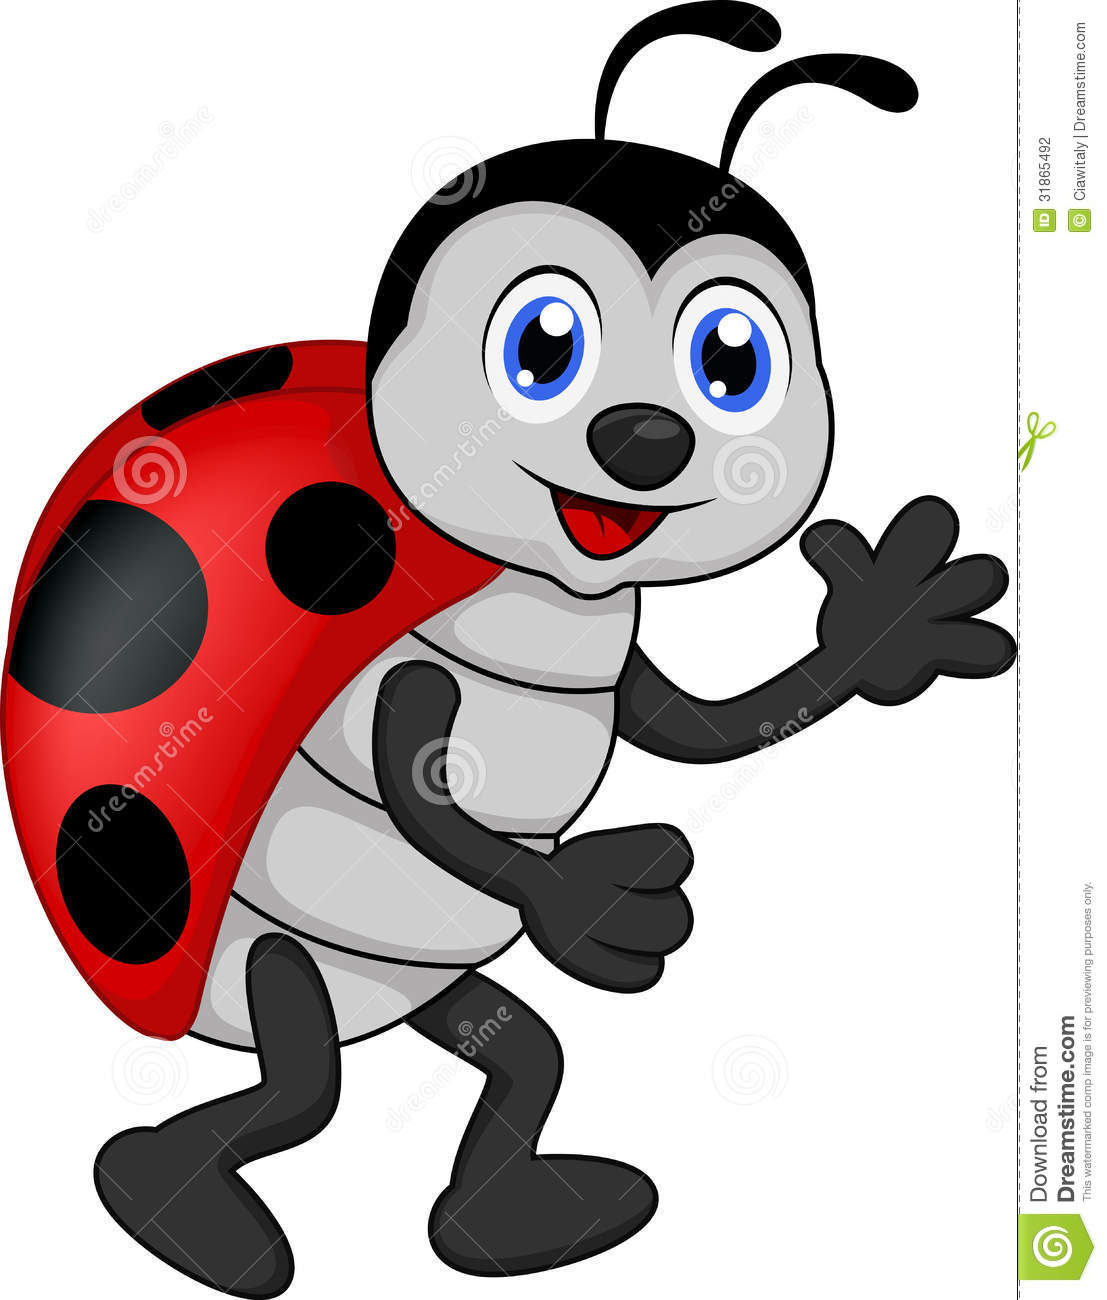 Displaying 19> Images For - Cute Ladybug Cartoon...